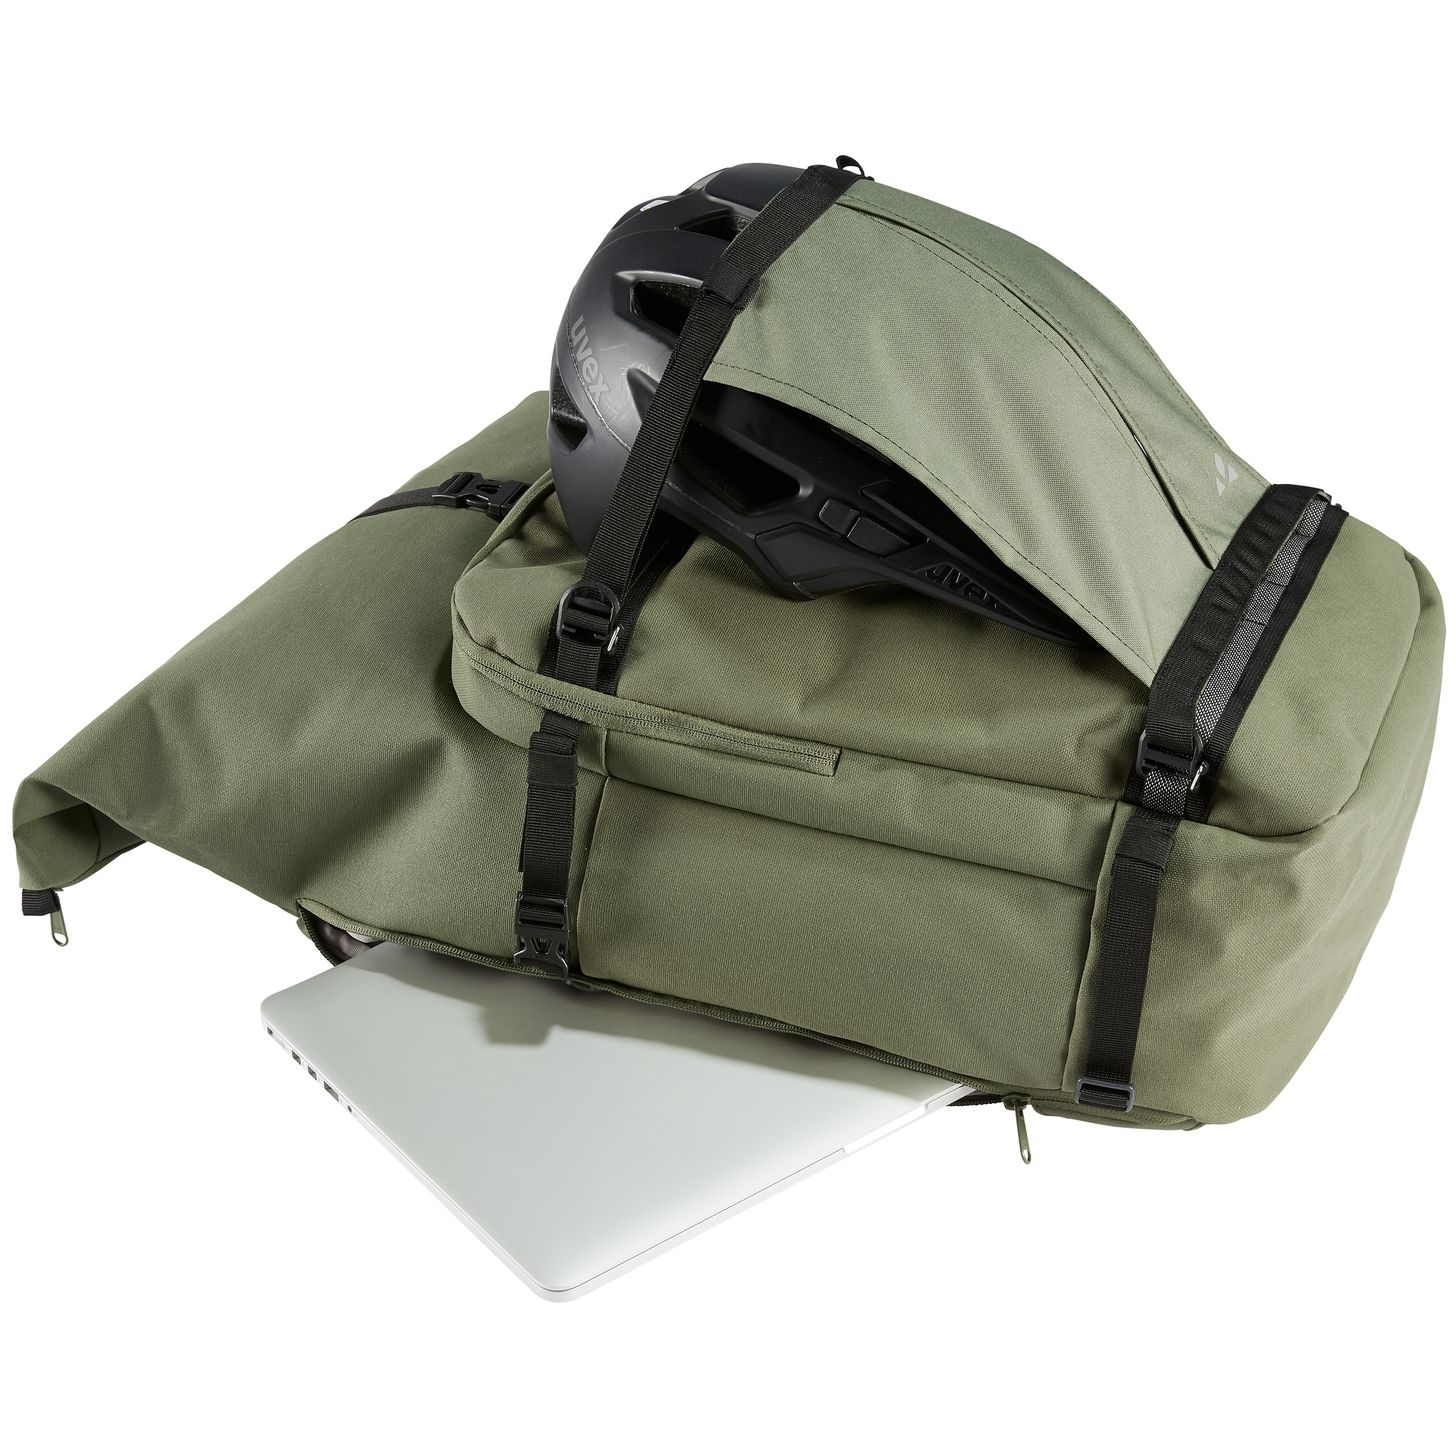 Image of Vaude ExCycling Pack Backpack - black